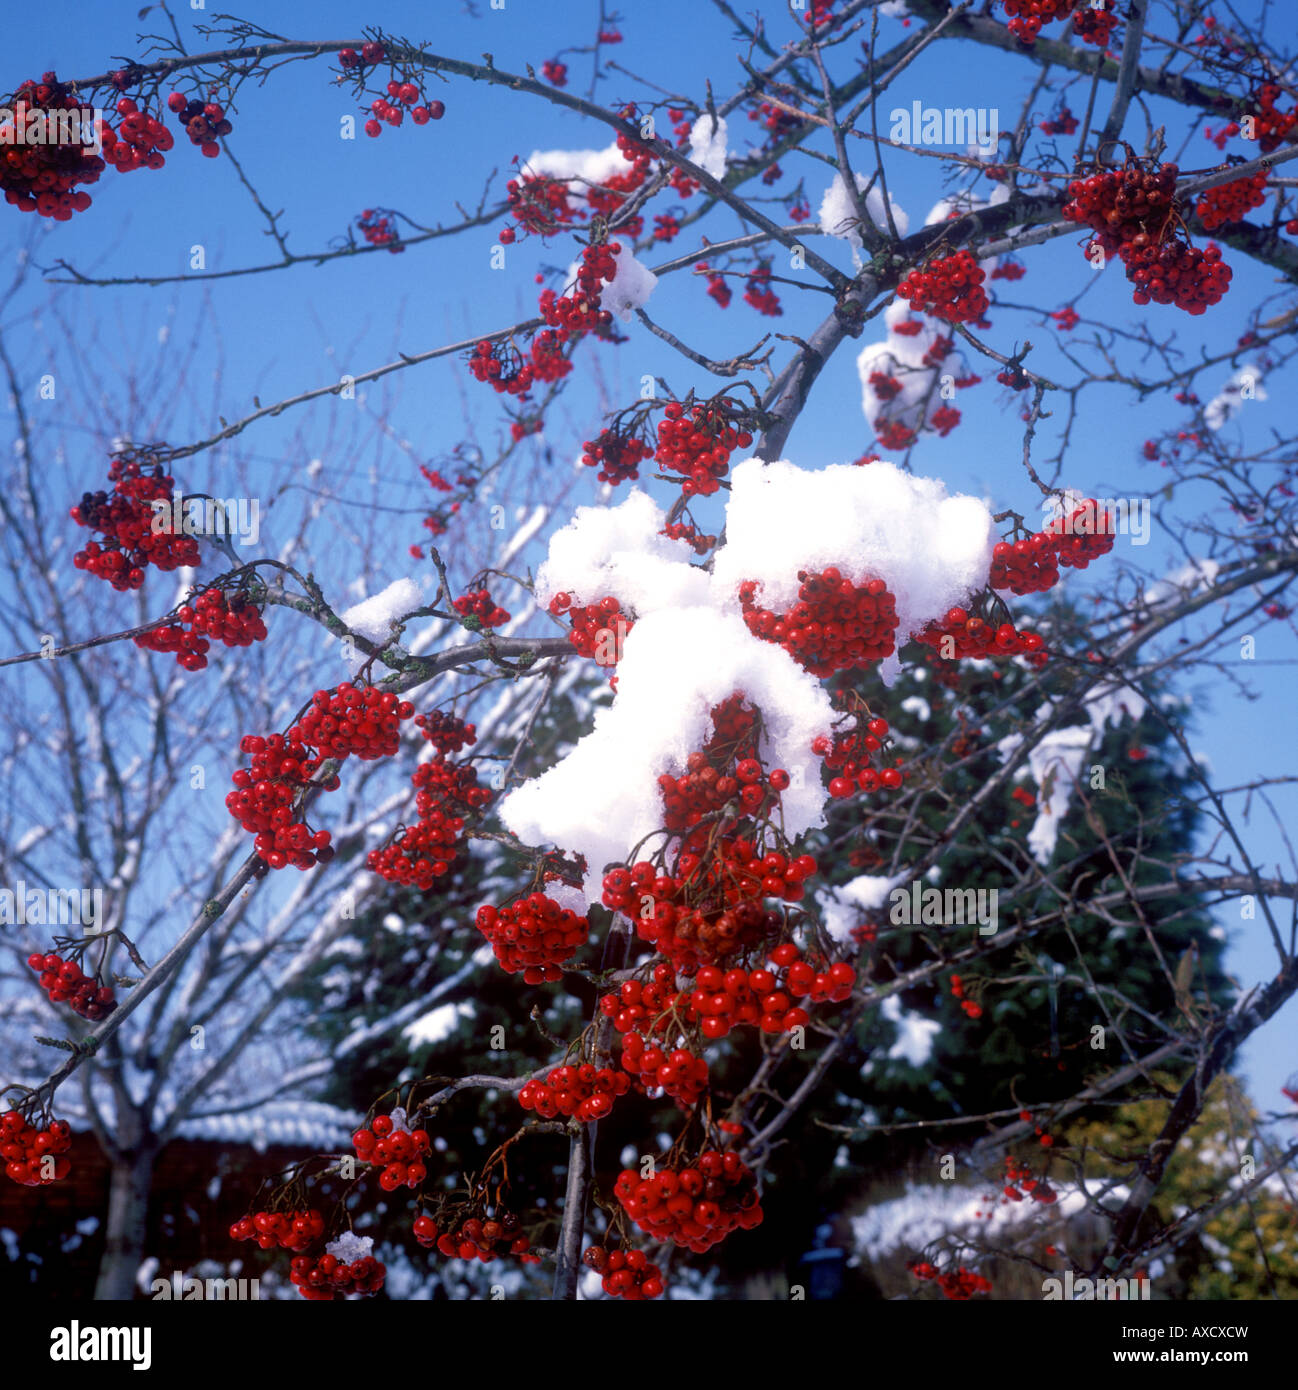 Misterton - Snow settled on red berries Stock Photo